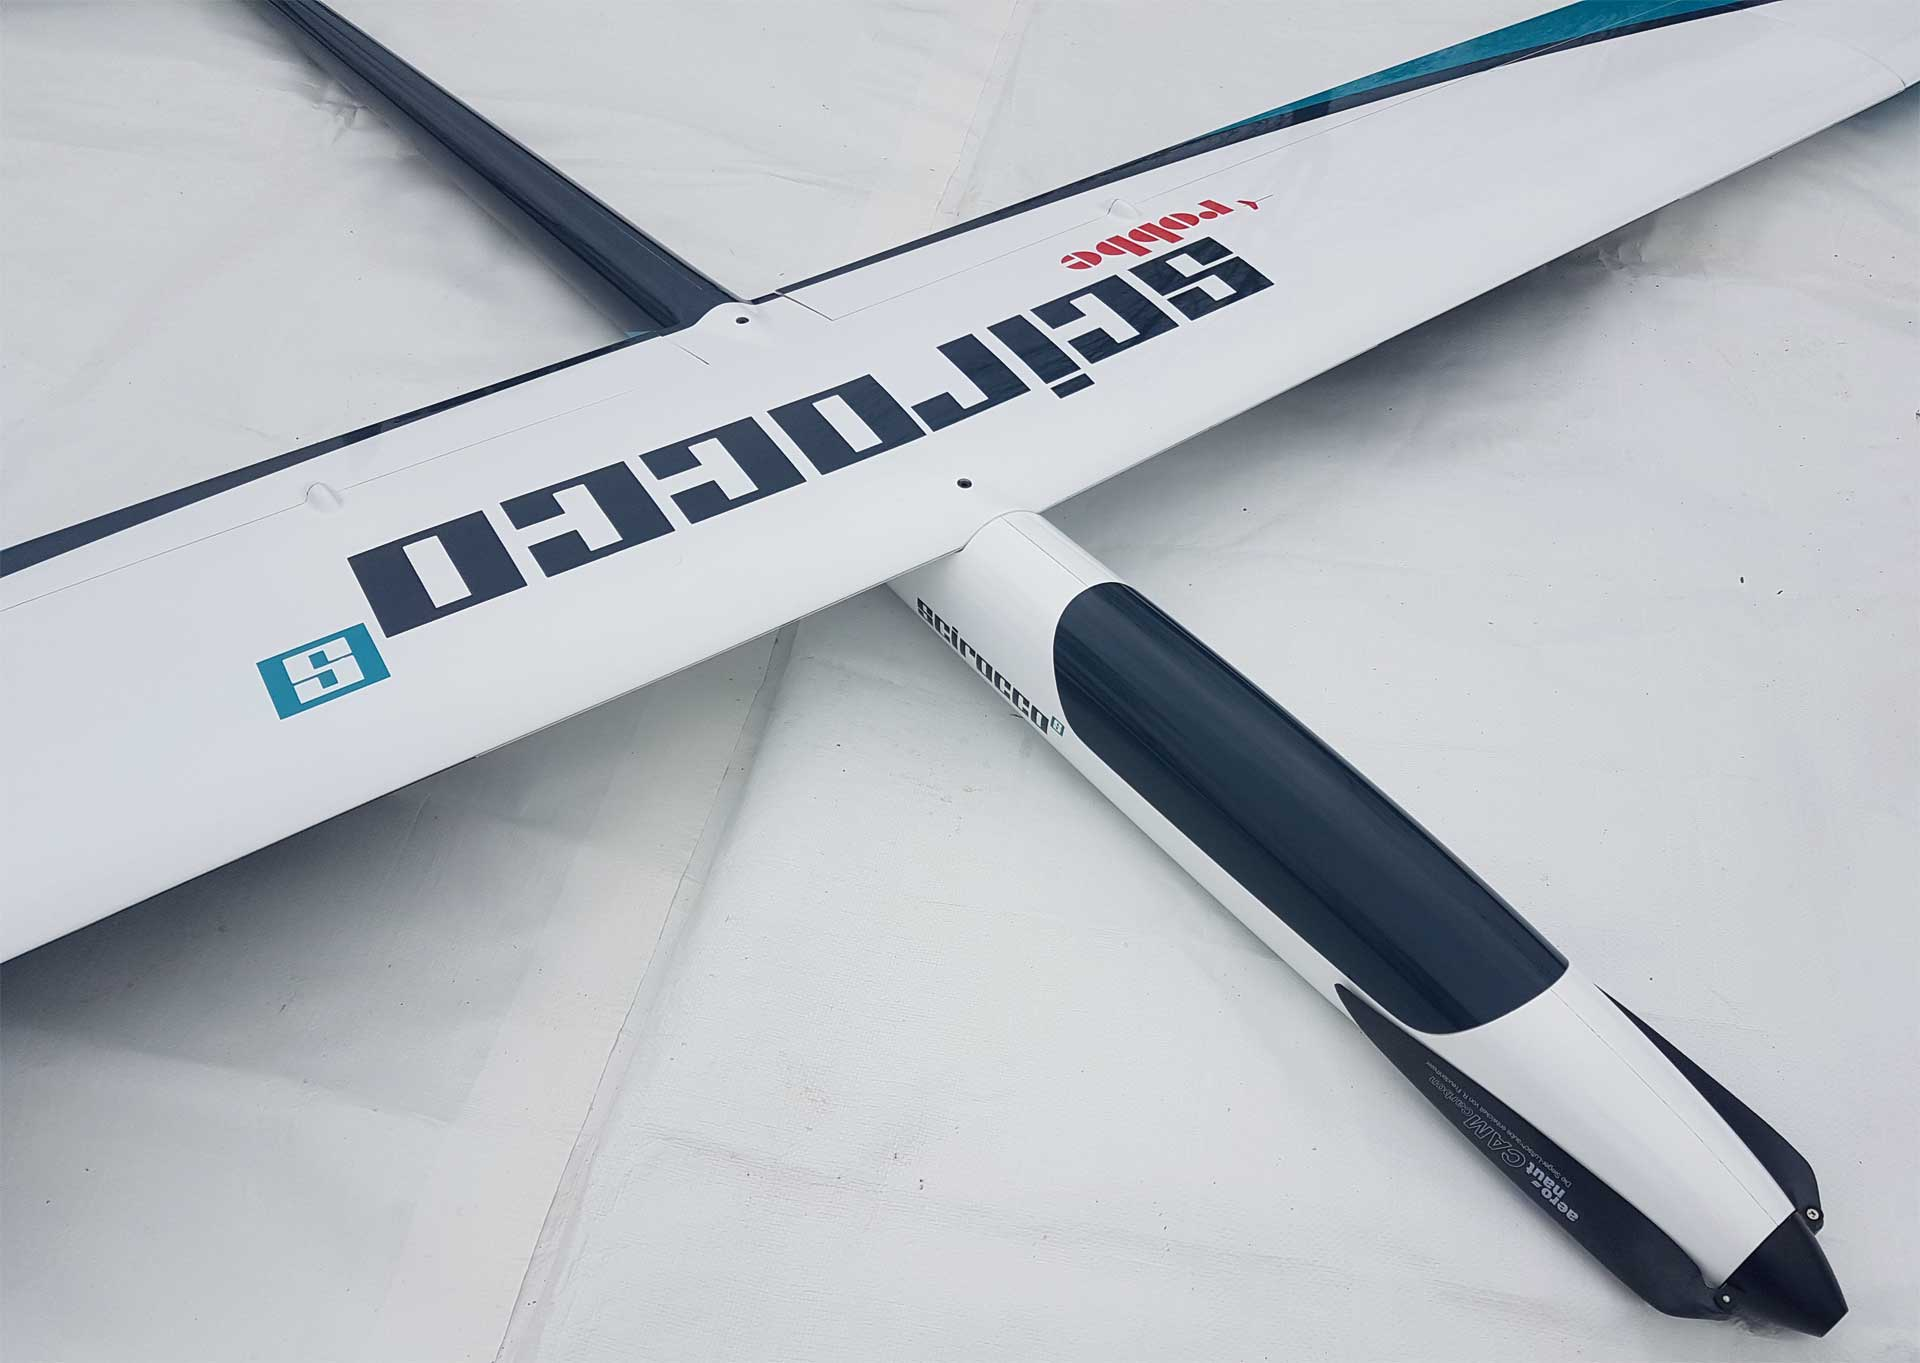 Robbe Modellsport SCIROCCO S 3,75M PNP FULL-GDRP HIGH PERFORMANCE GLIDER WITH 4 FLAP WING